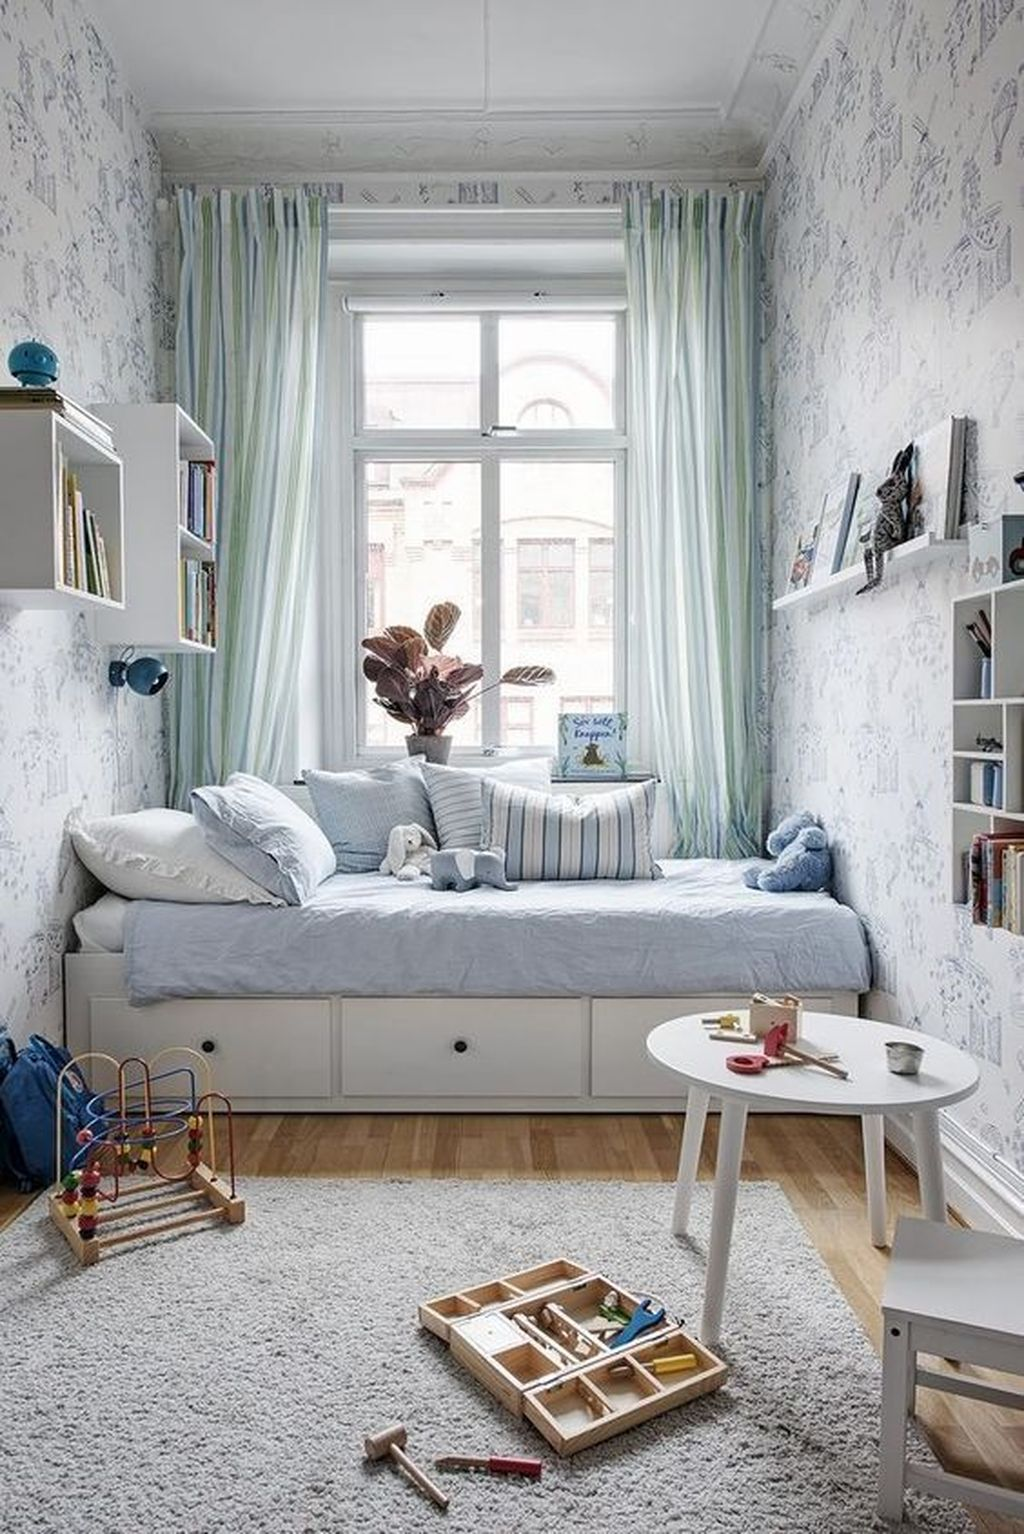 Admirable Tiny Bedroom Design Ideas 19